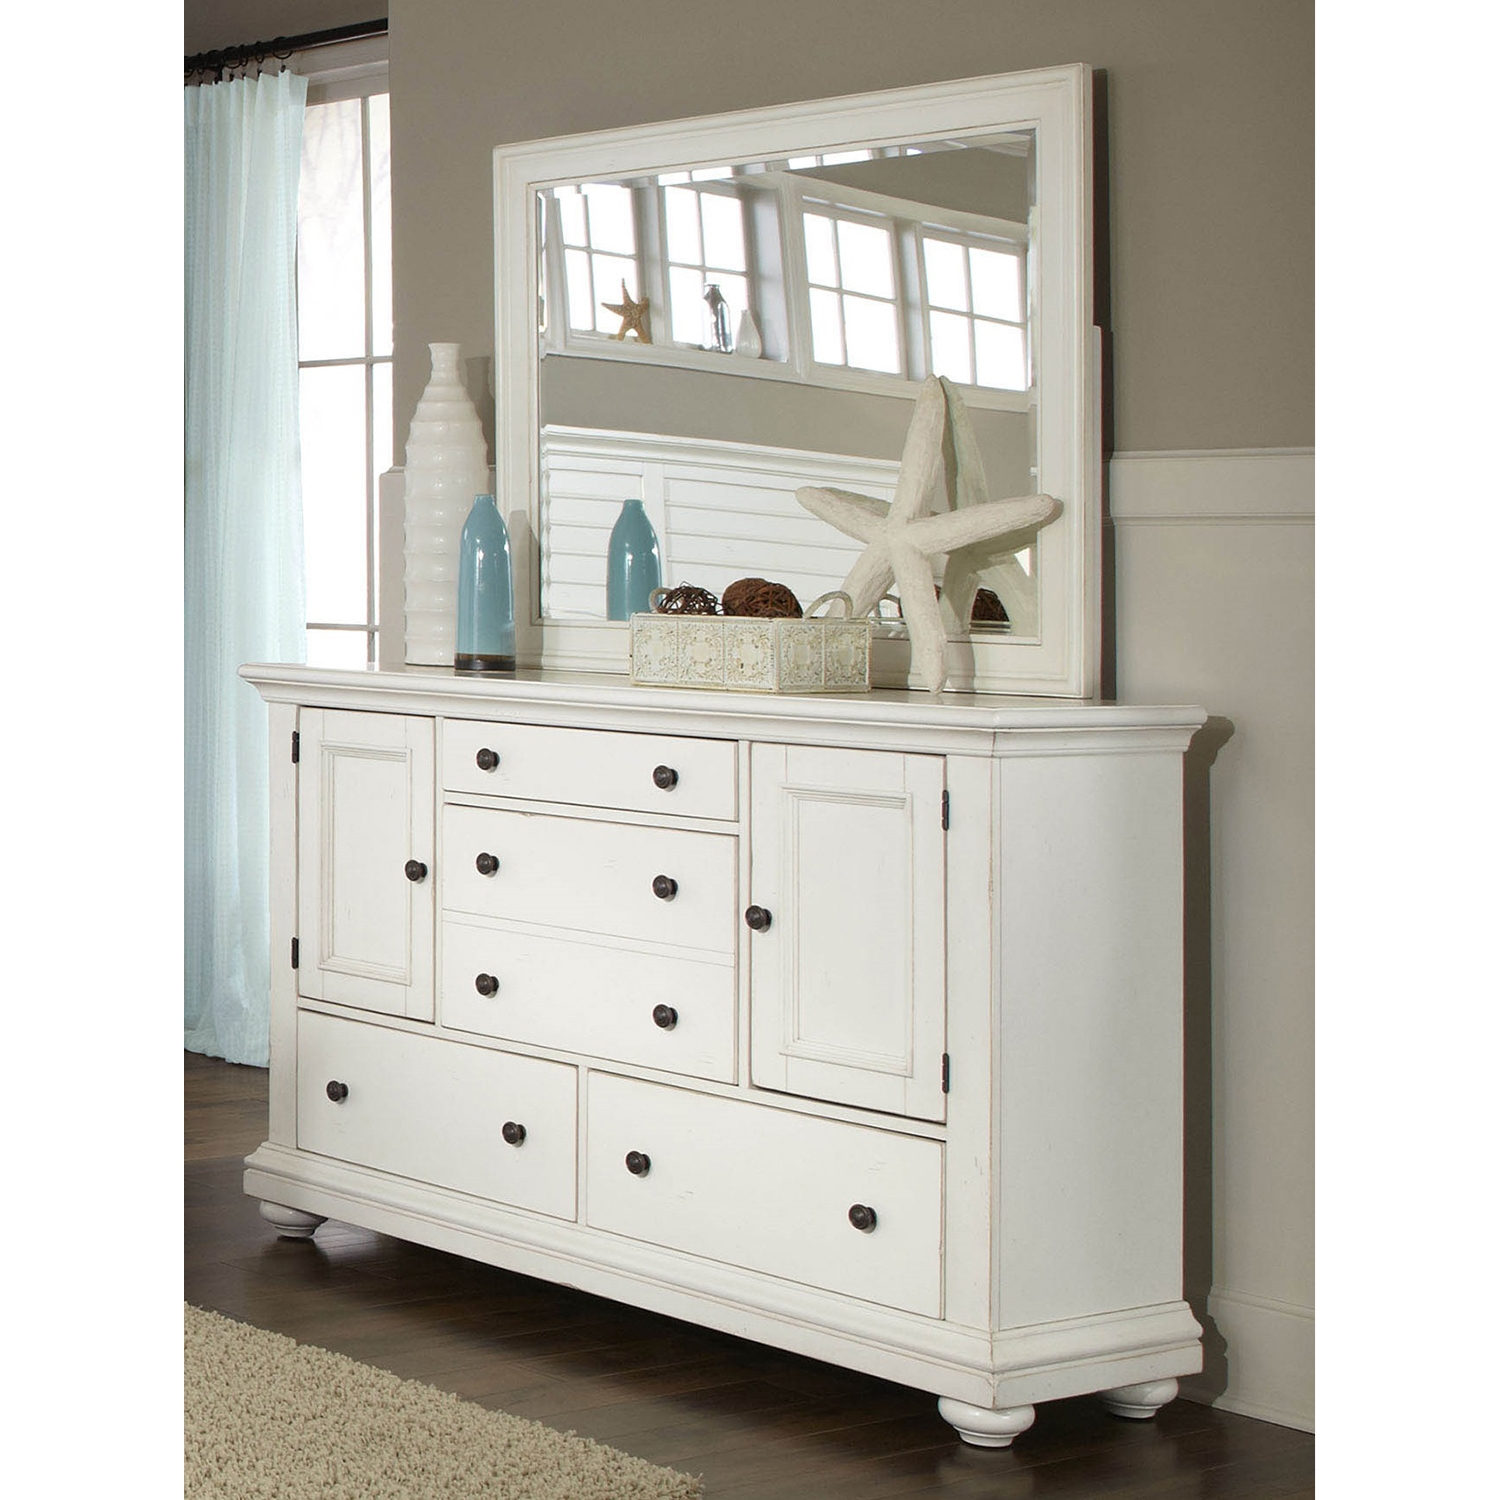 Pathways Dresser in Antique White - AW-5110-252